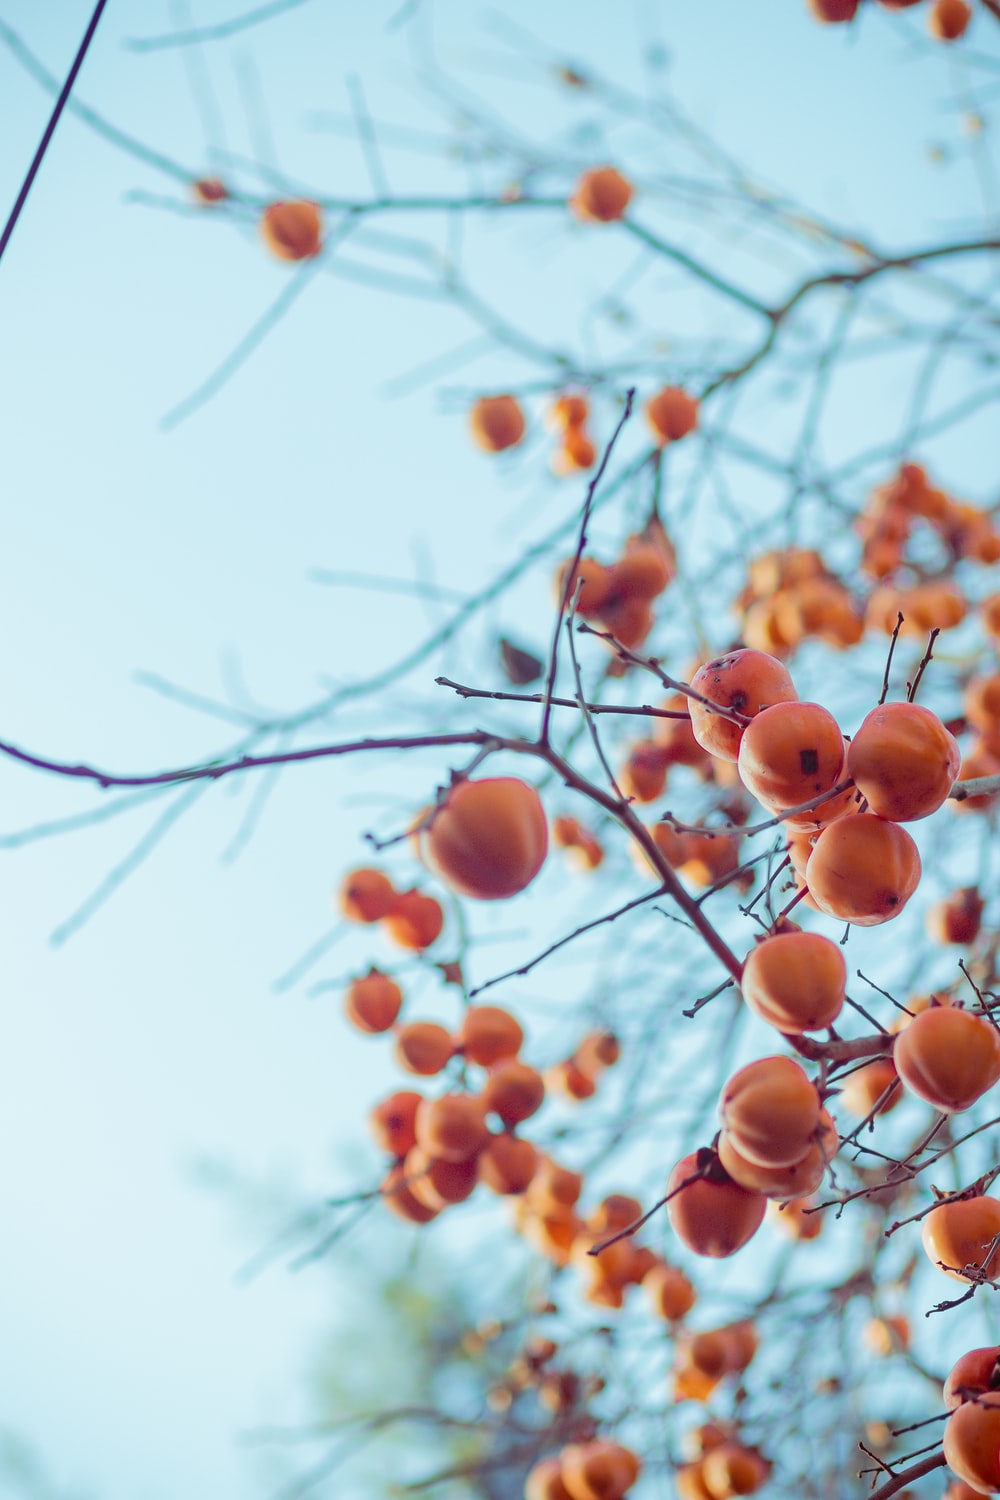 brown round fruits on tree during daytime